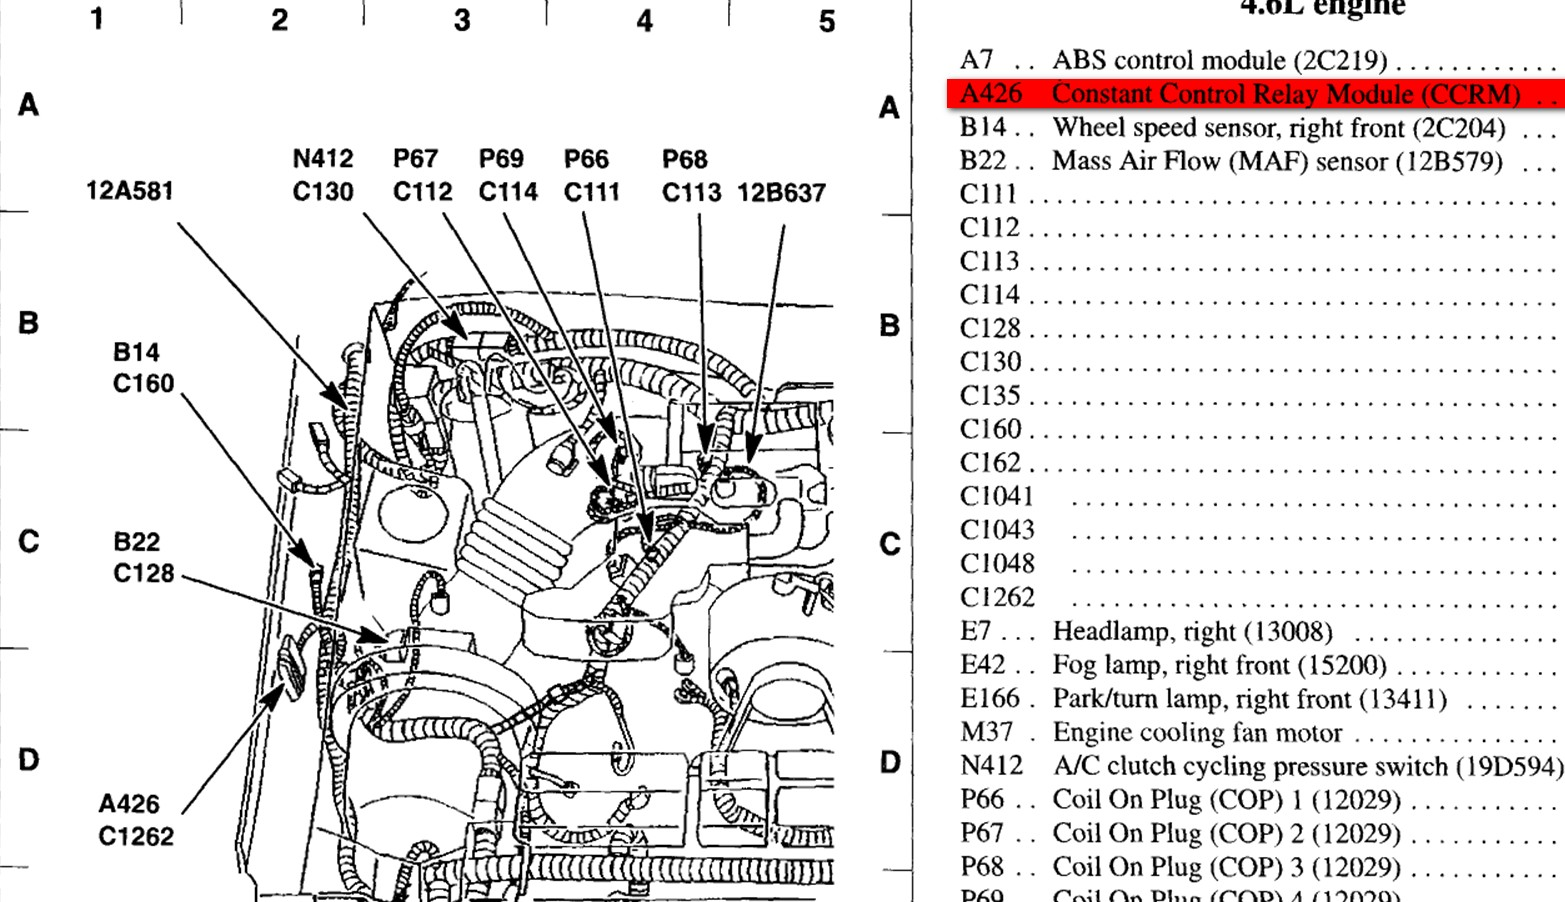 can someone supply me with the underhood fuse box diagram